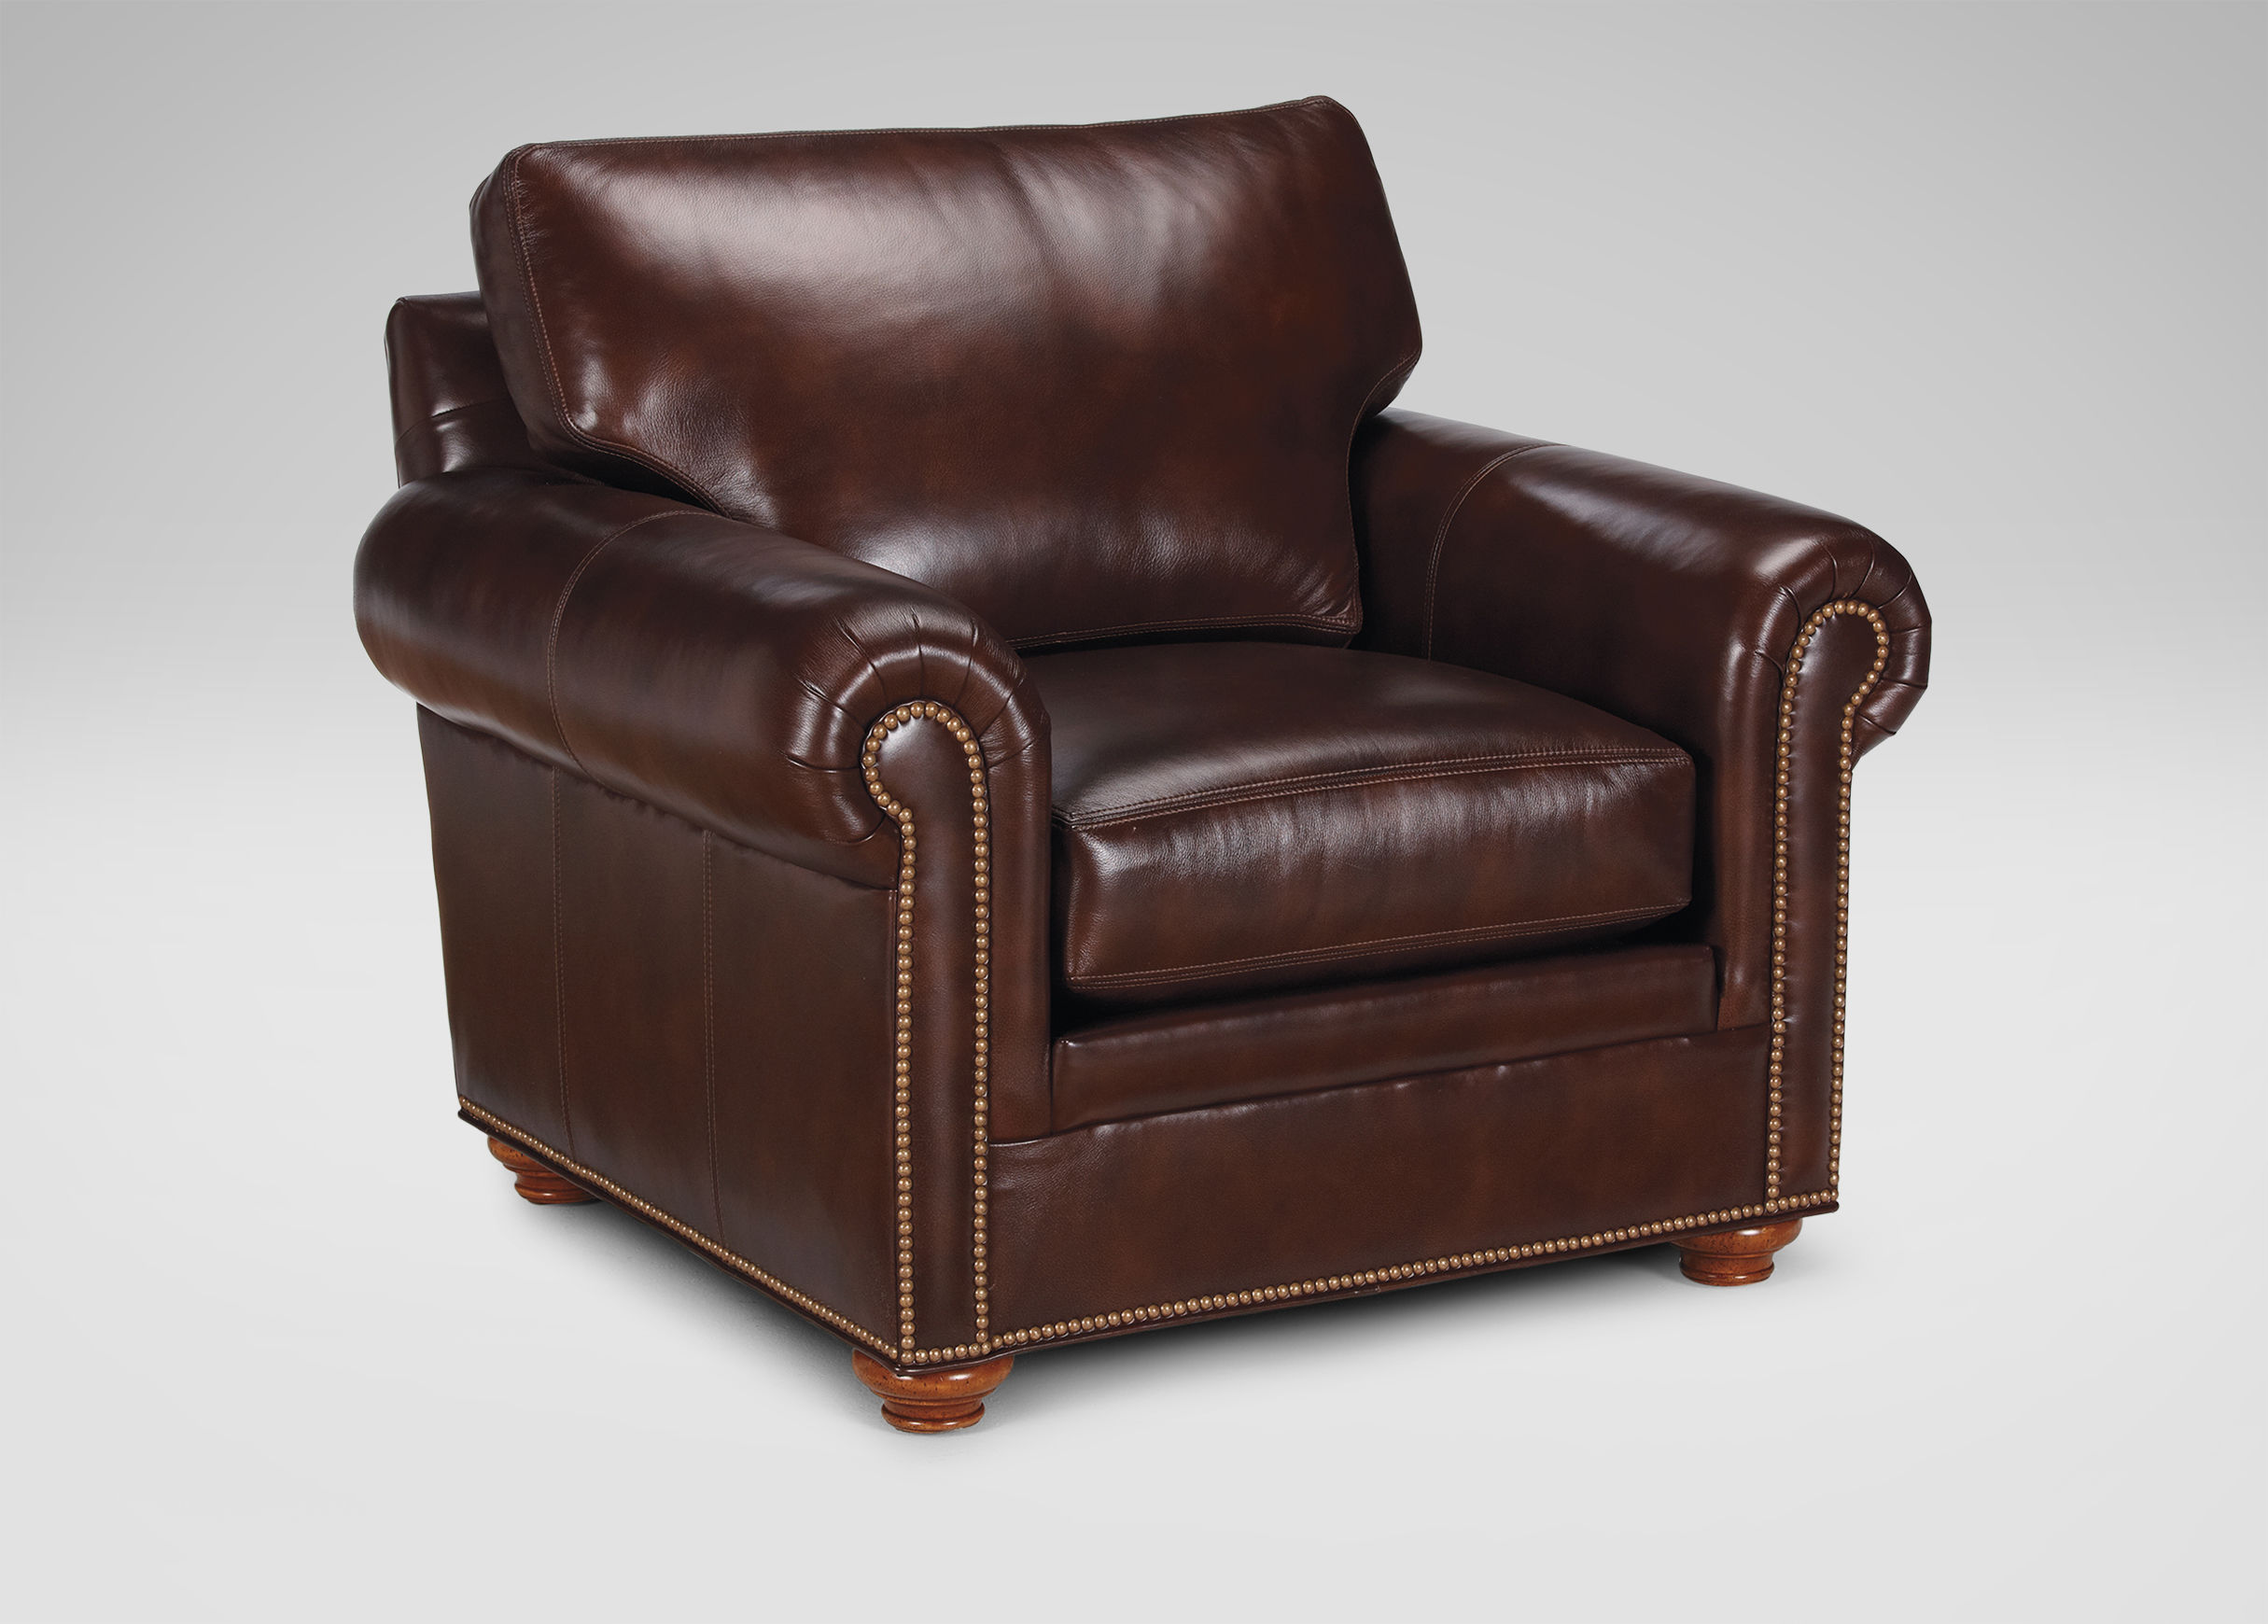 Leather Sofa Chair Ethan Allen Leather Furniture Homesfeed